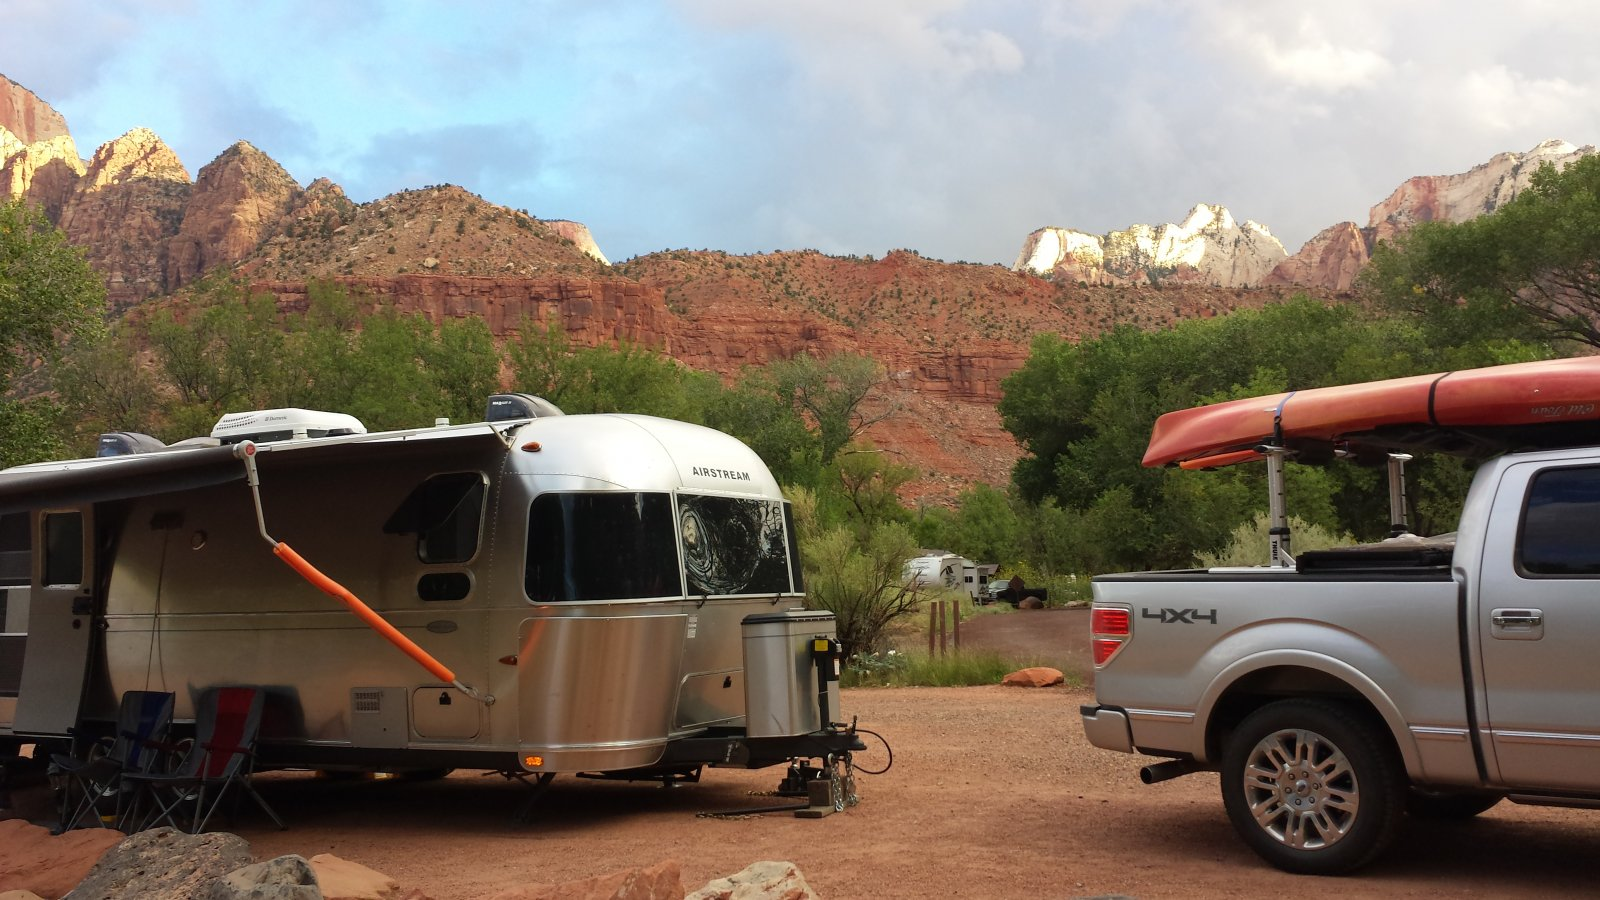 Click image for larger version  Name:Zion Park 9-14.jpg Views:152 Size:259.8 KB ID:235507